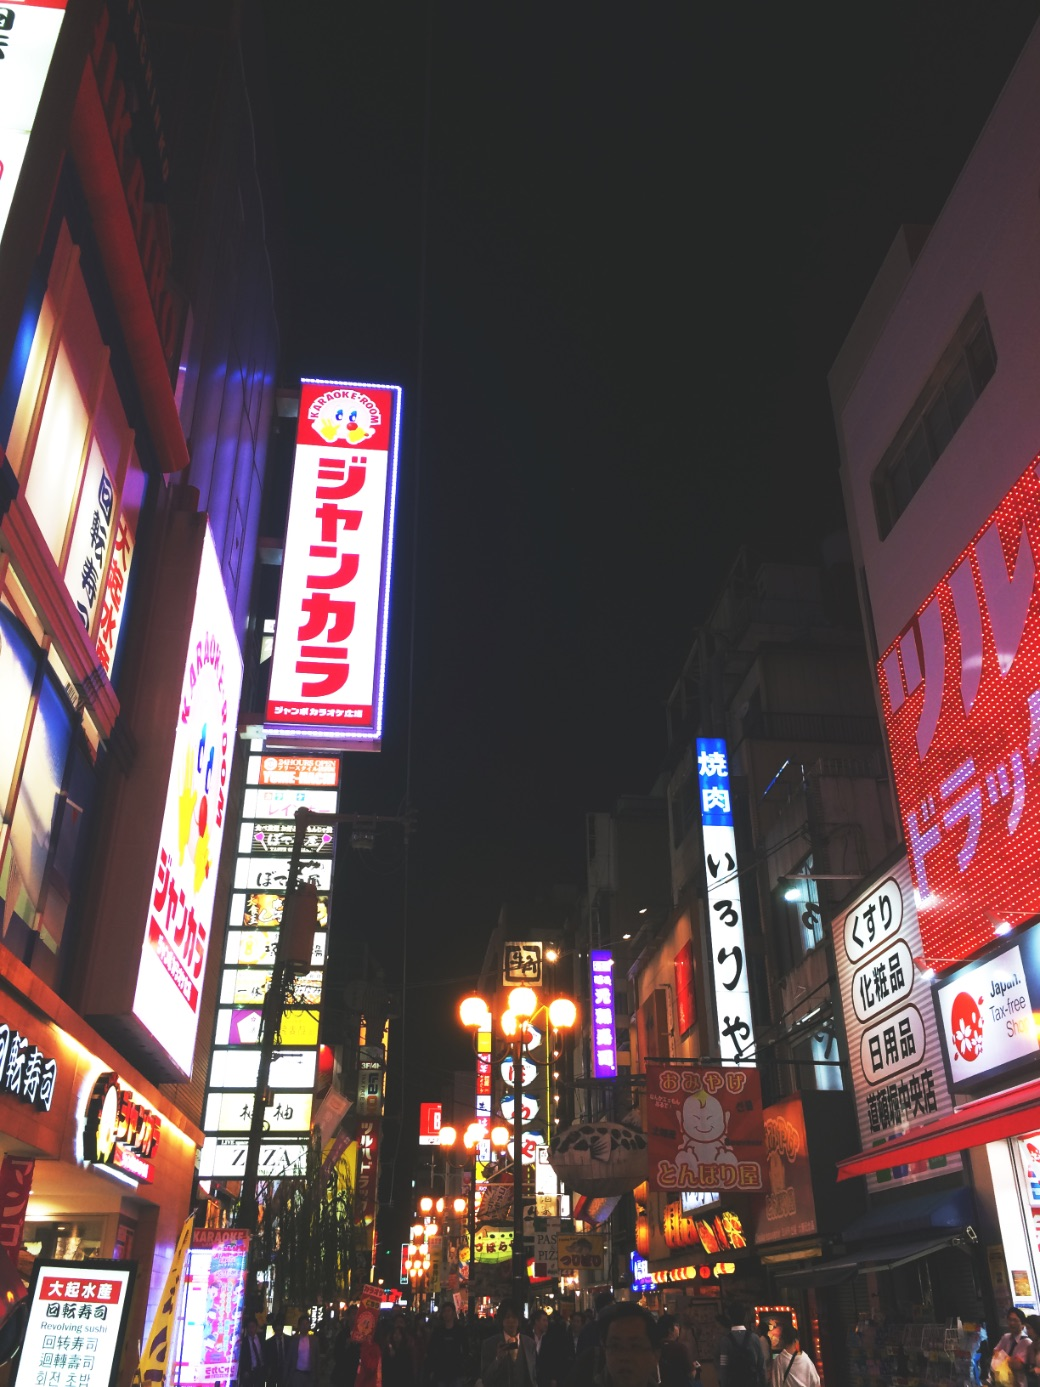 The vibrant atmosphere of Dotonbori street by night in Osaka - Japan